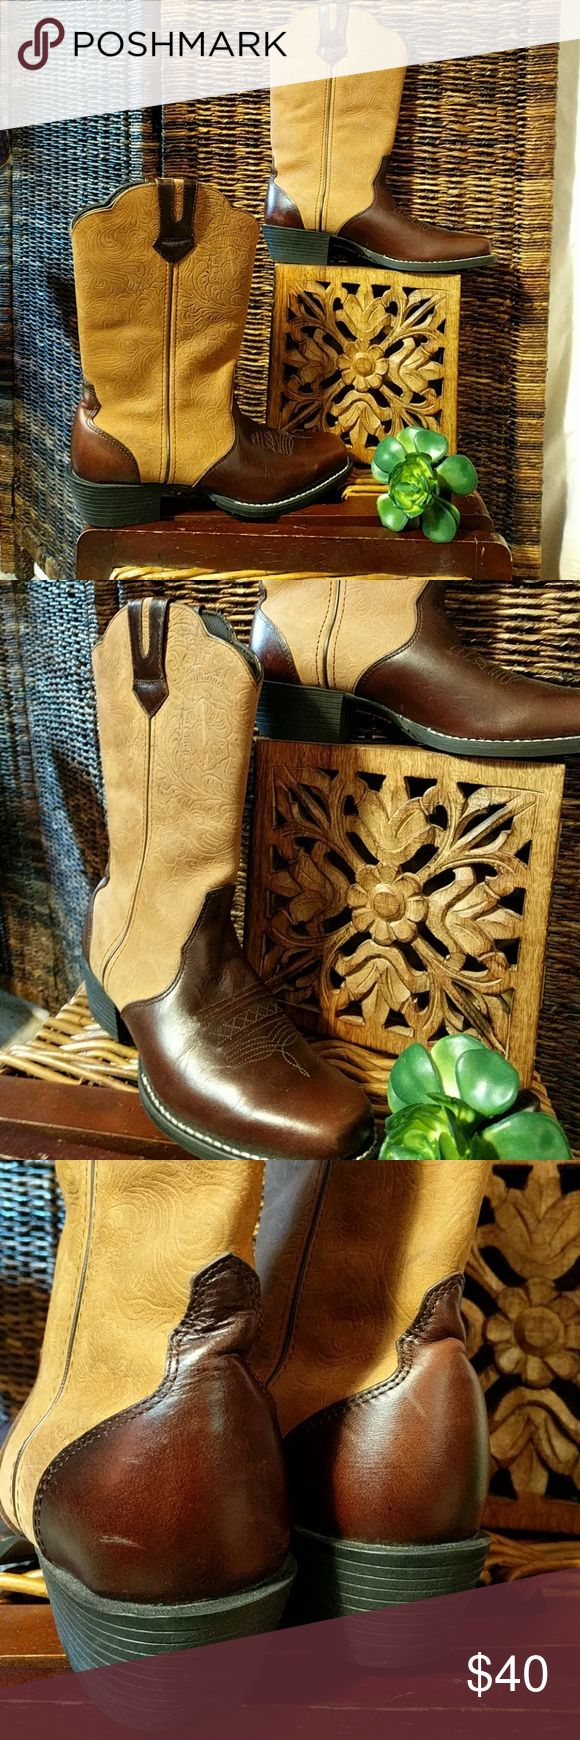 Durango 2-Toned Cowboy Boots Durango 2-Toned Cowboy Boots. Beautiful condition, a few marks. See pictures for better understanding and for heel measurement. Dark brown and tan. Durango Shoes Heeled Boots